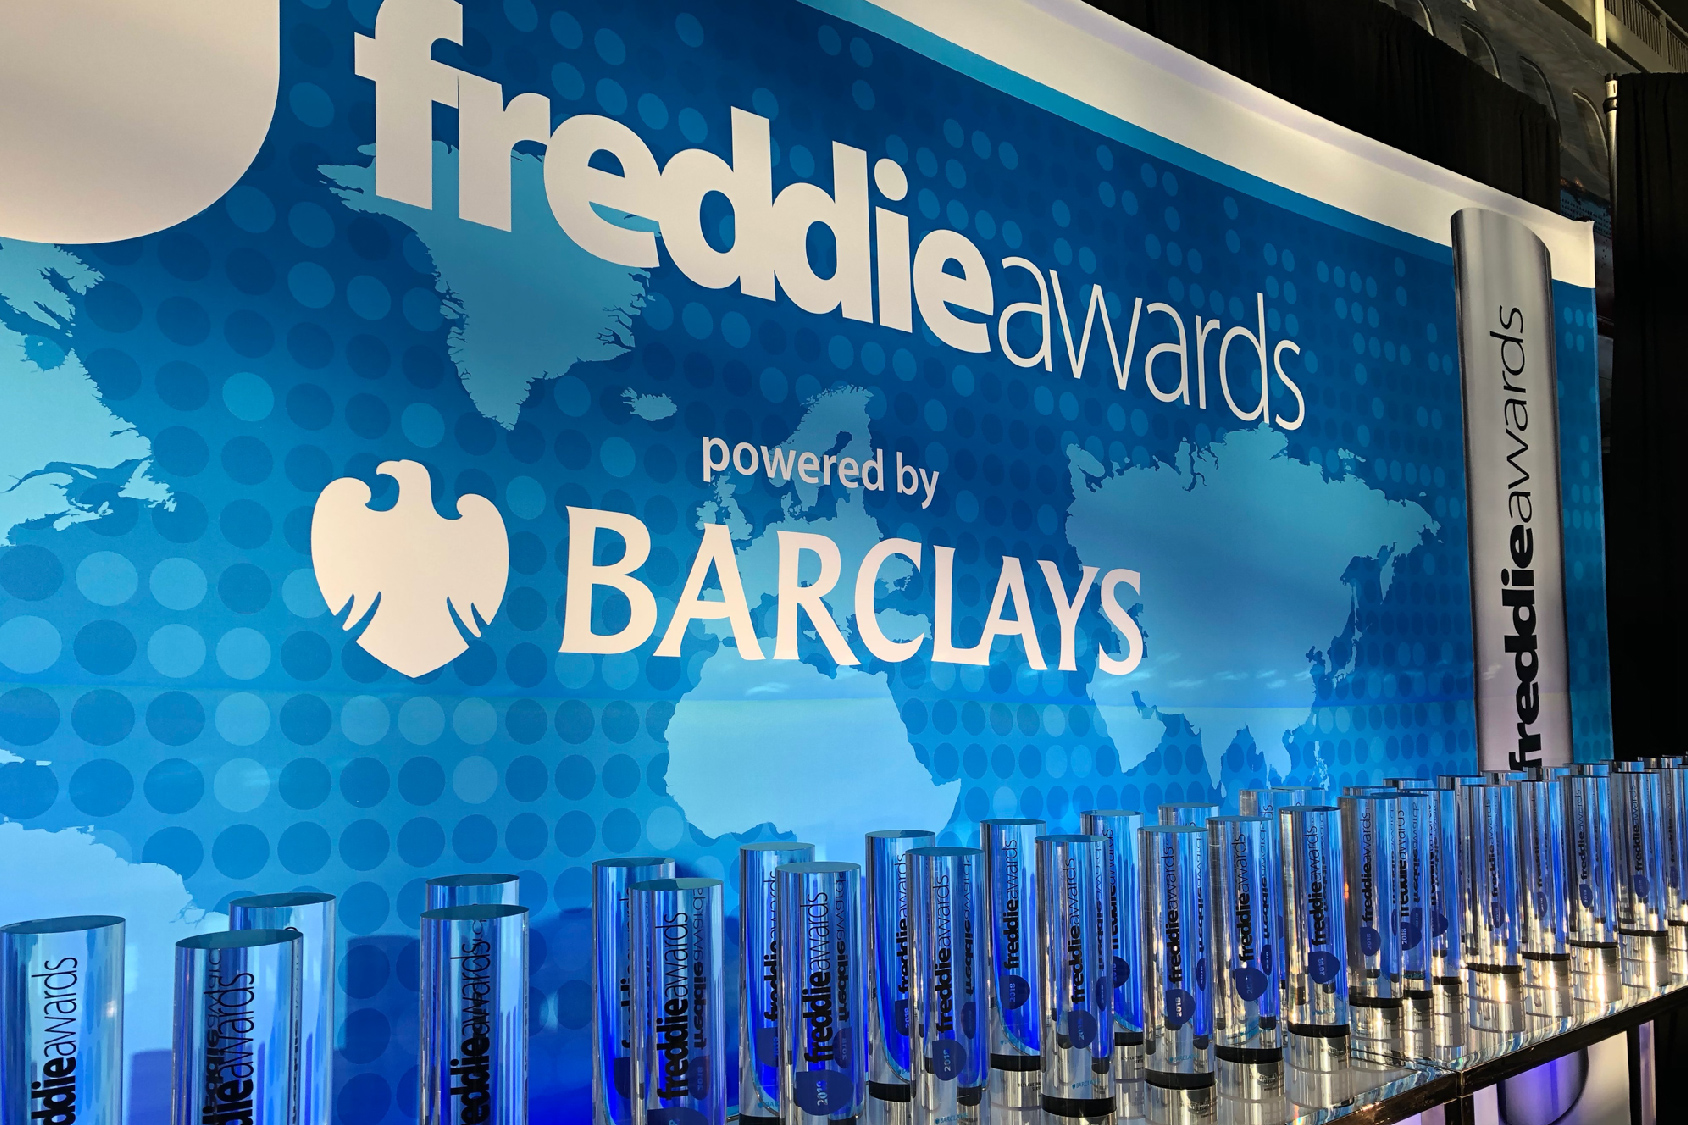 Custom trophies at the annual Freddie Awards